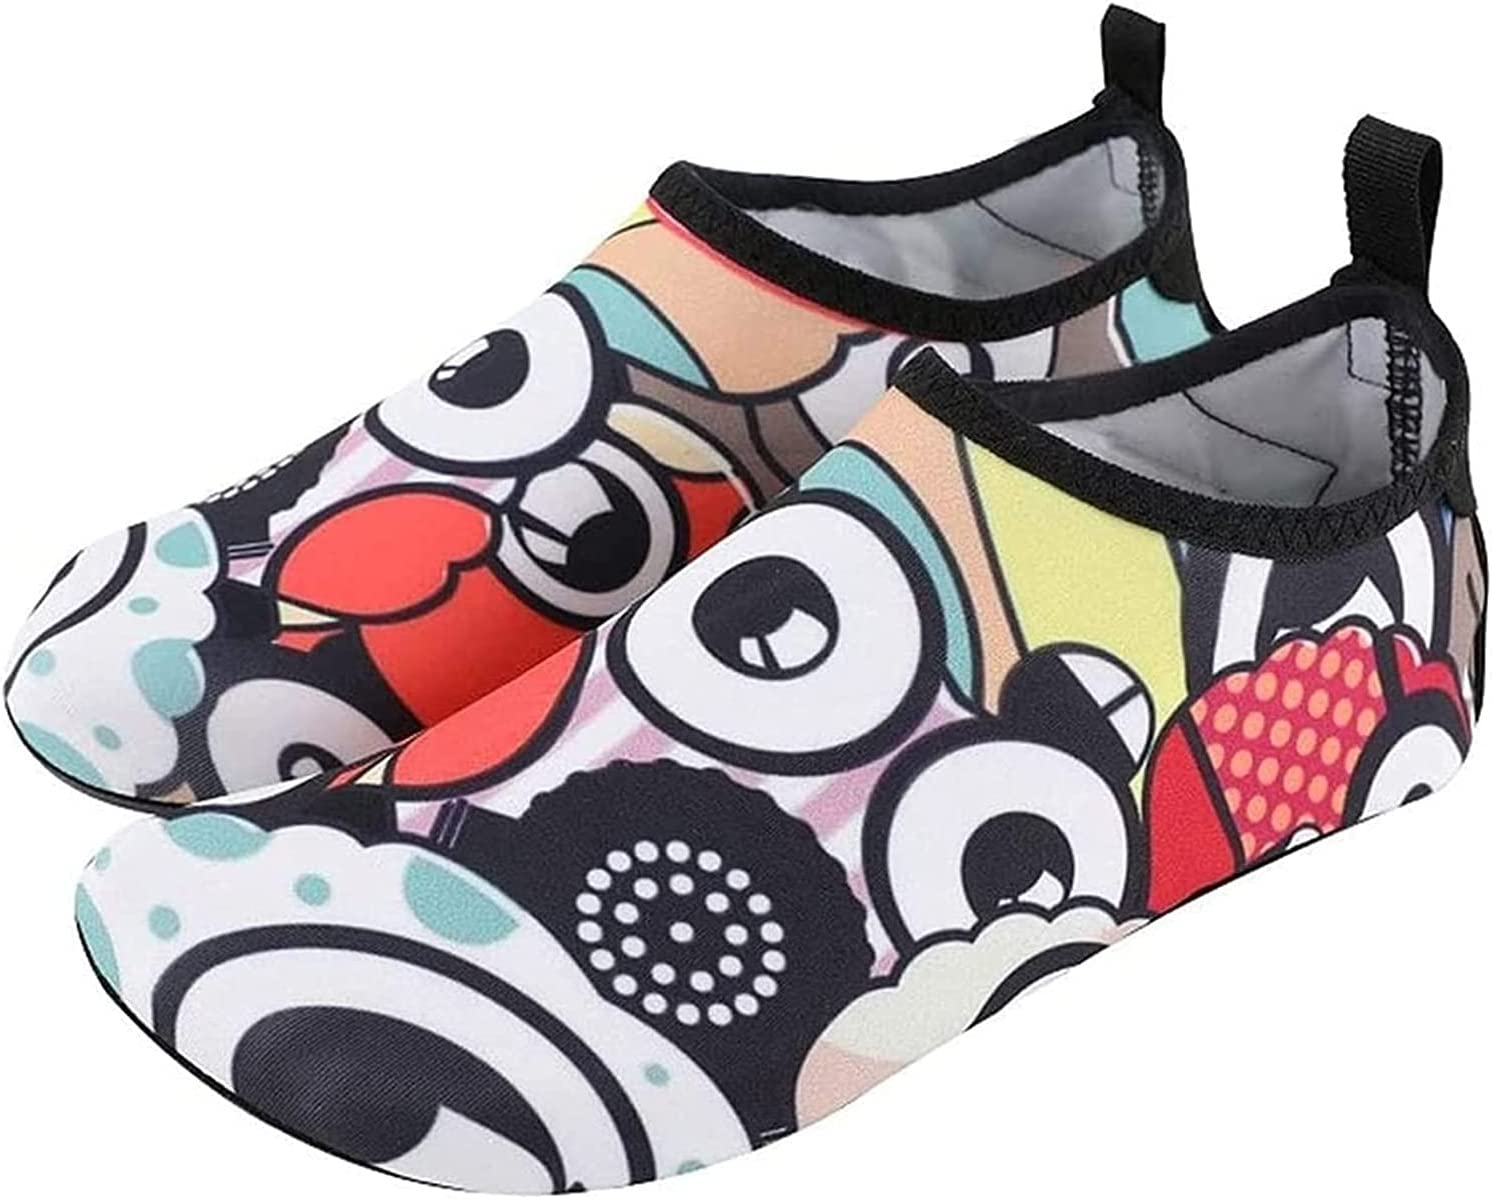 LSZ Swimming Shoes Max 64% OFF Water Wading Snorkeling Outstanding Quick-Dryin and